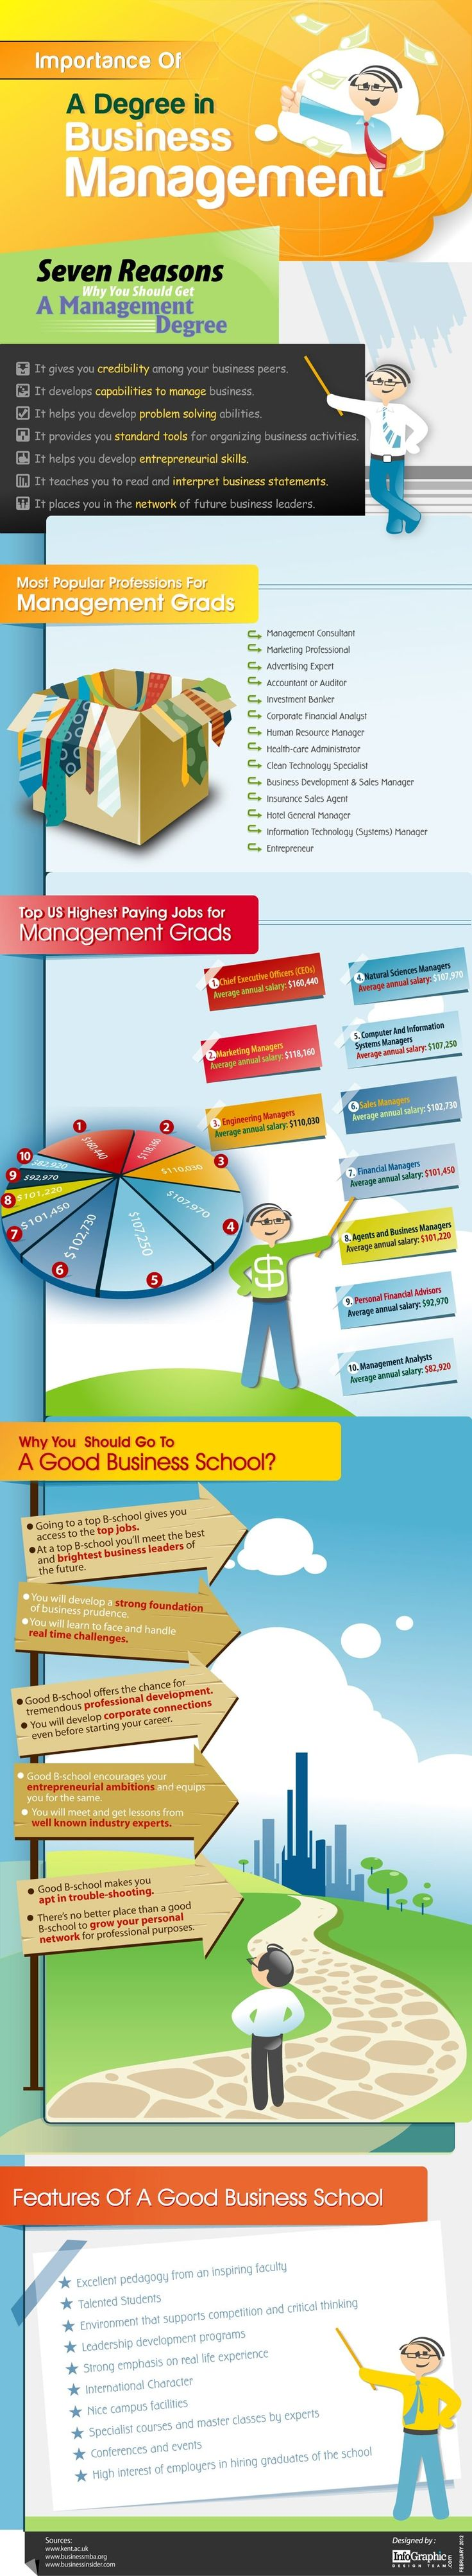 Importance of a Business Management Degree This